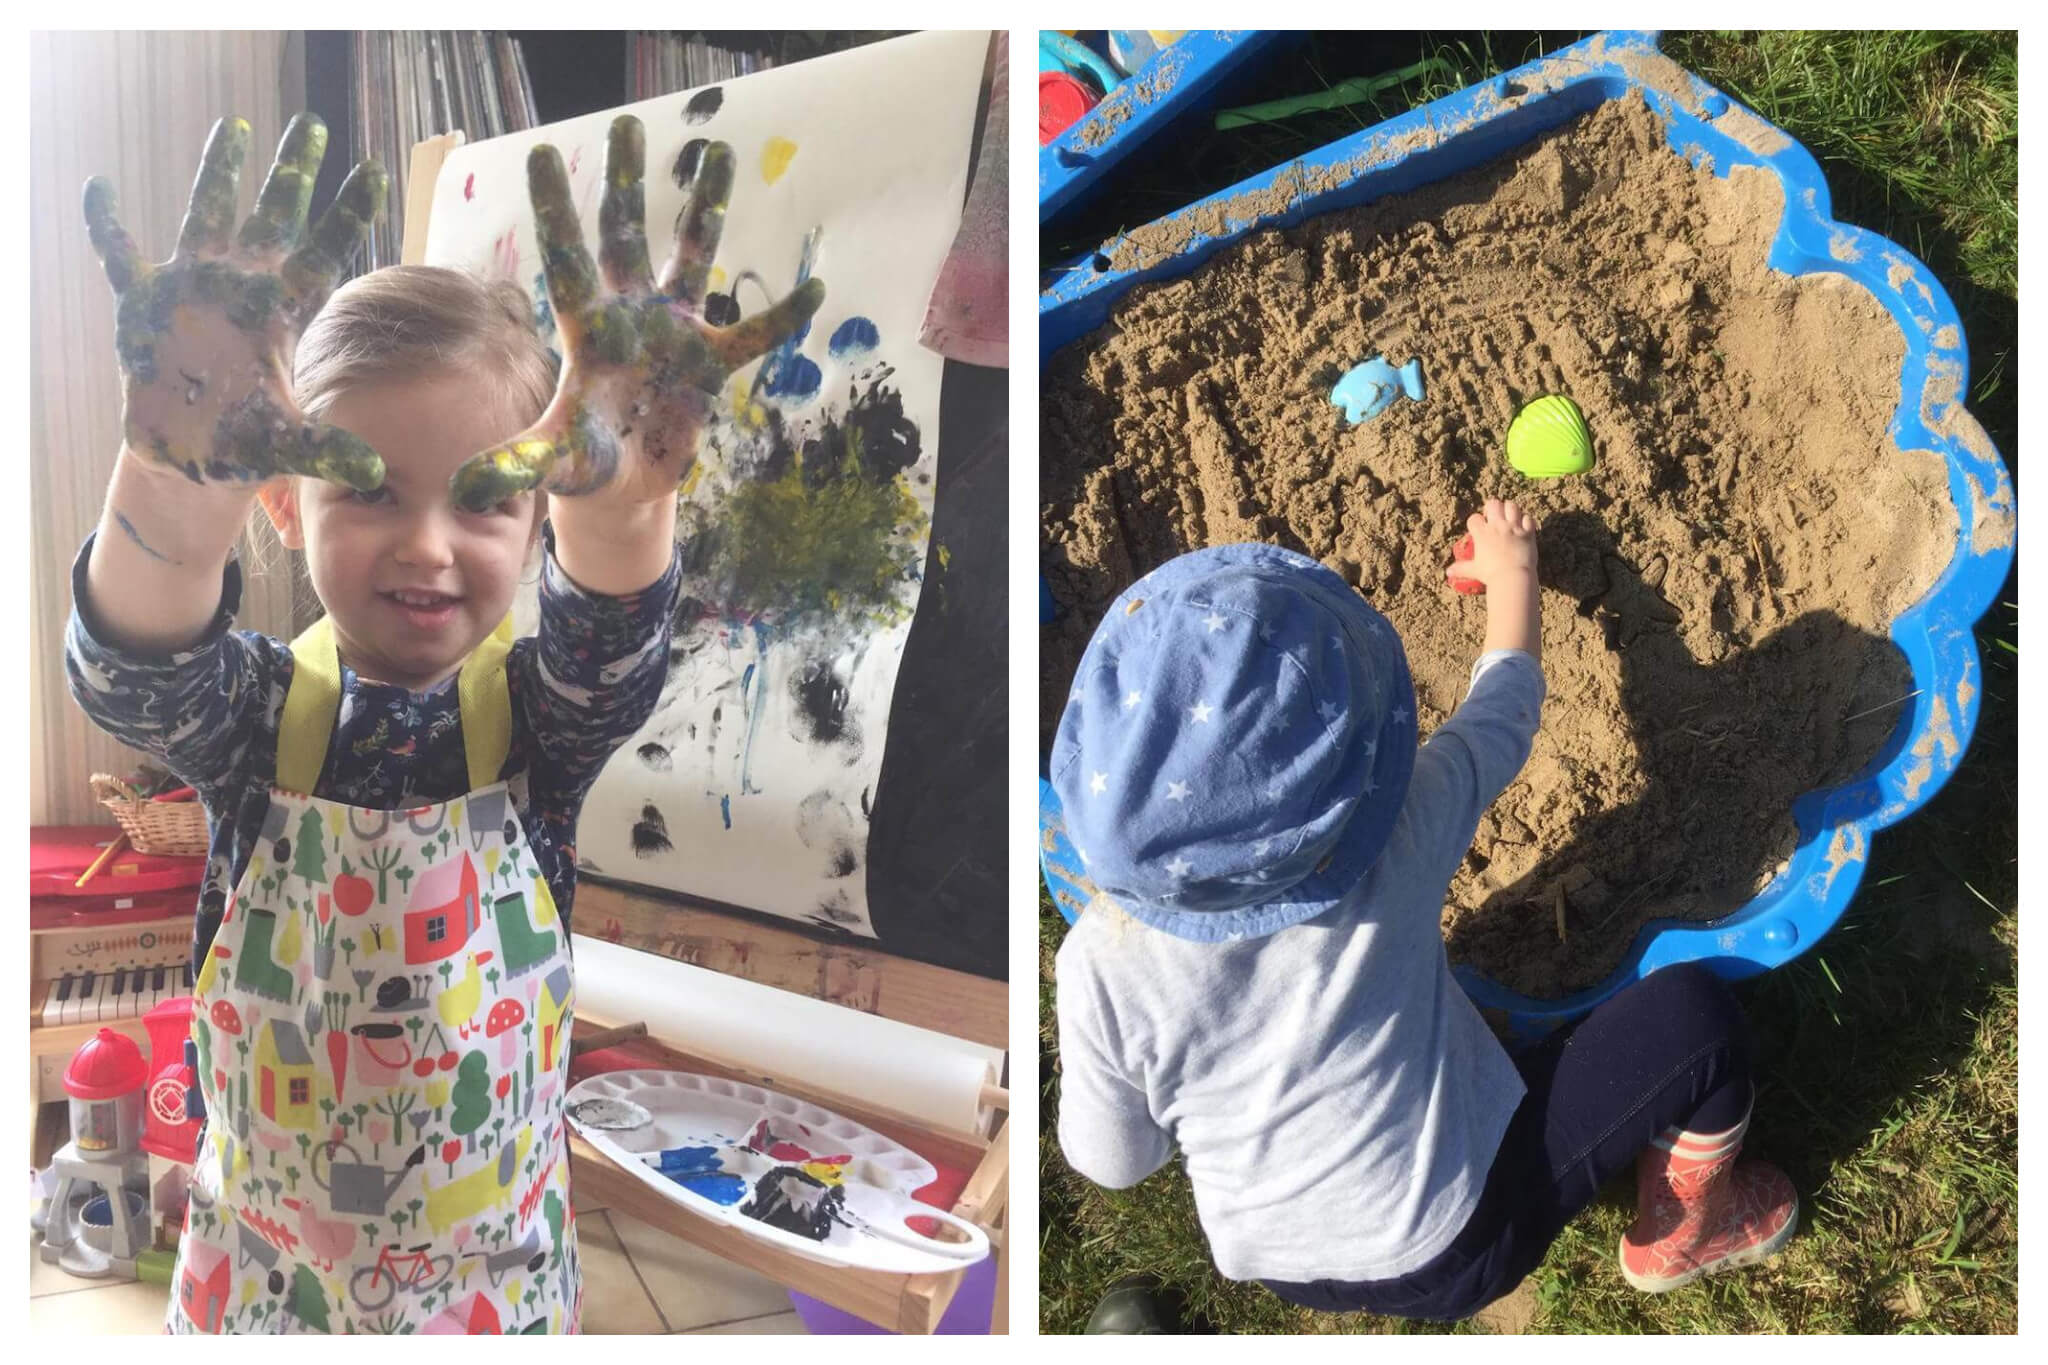 Left: Emily's daughter shows the camera her pain-covered hands, behind her a painting she has just created. Right: Emily's daughter plays in the sandbox in their garden on a sunny day during lockdown.